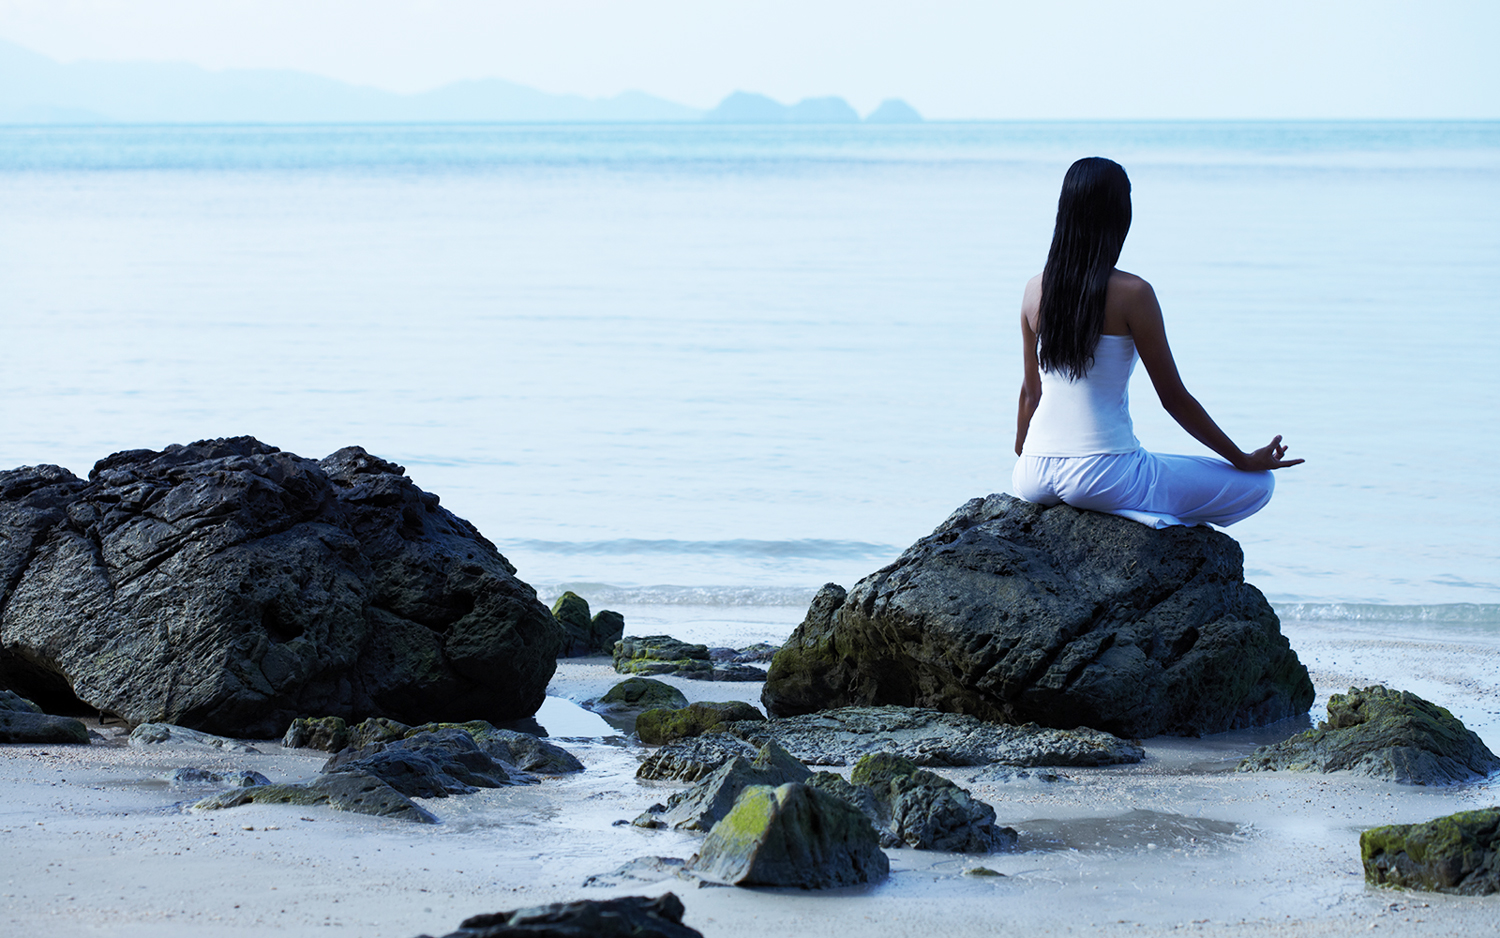 Relax and rejuvenate mind body and soul at the world's most exquisite spas. - Beauty & Wellness